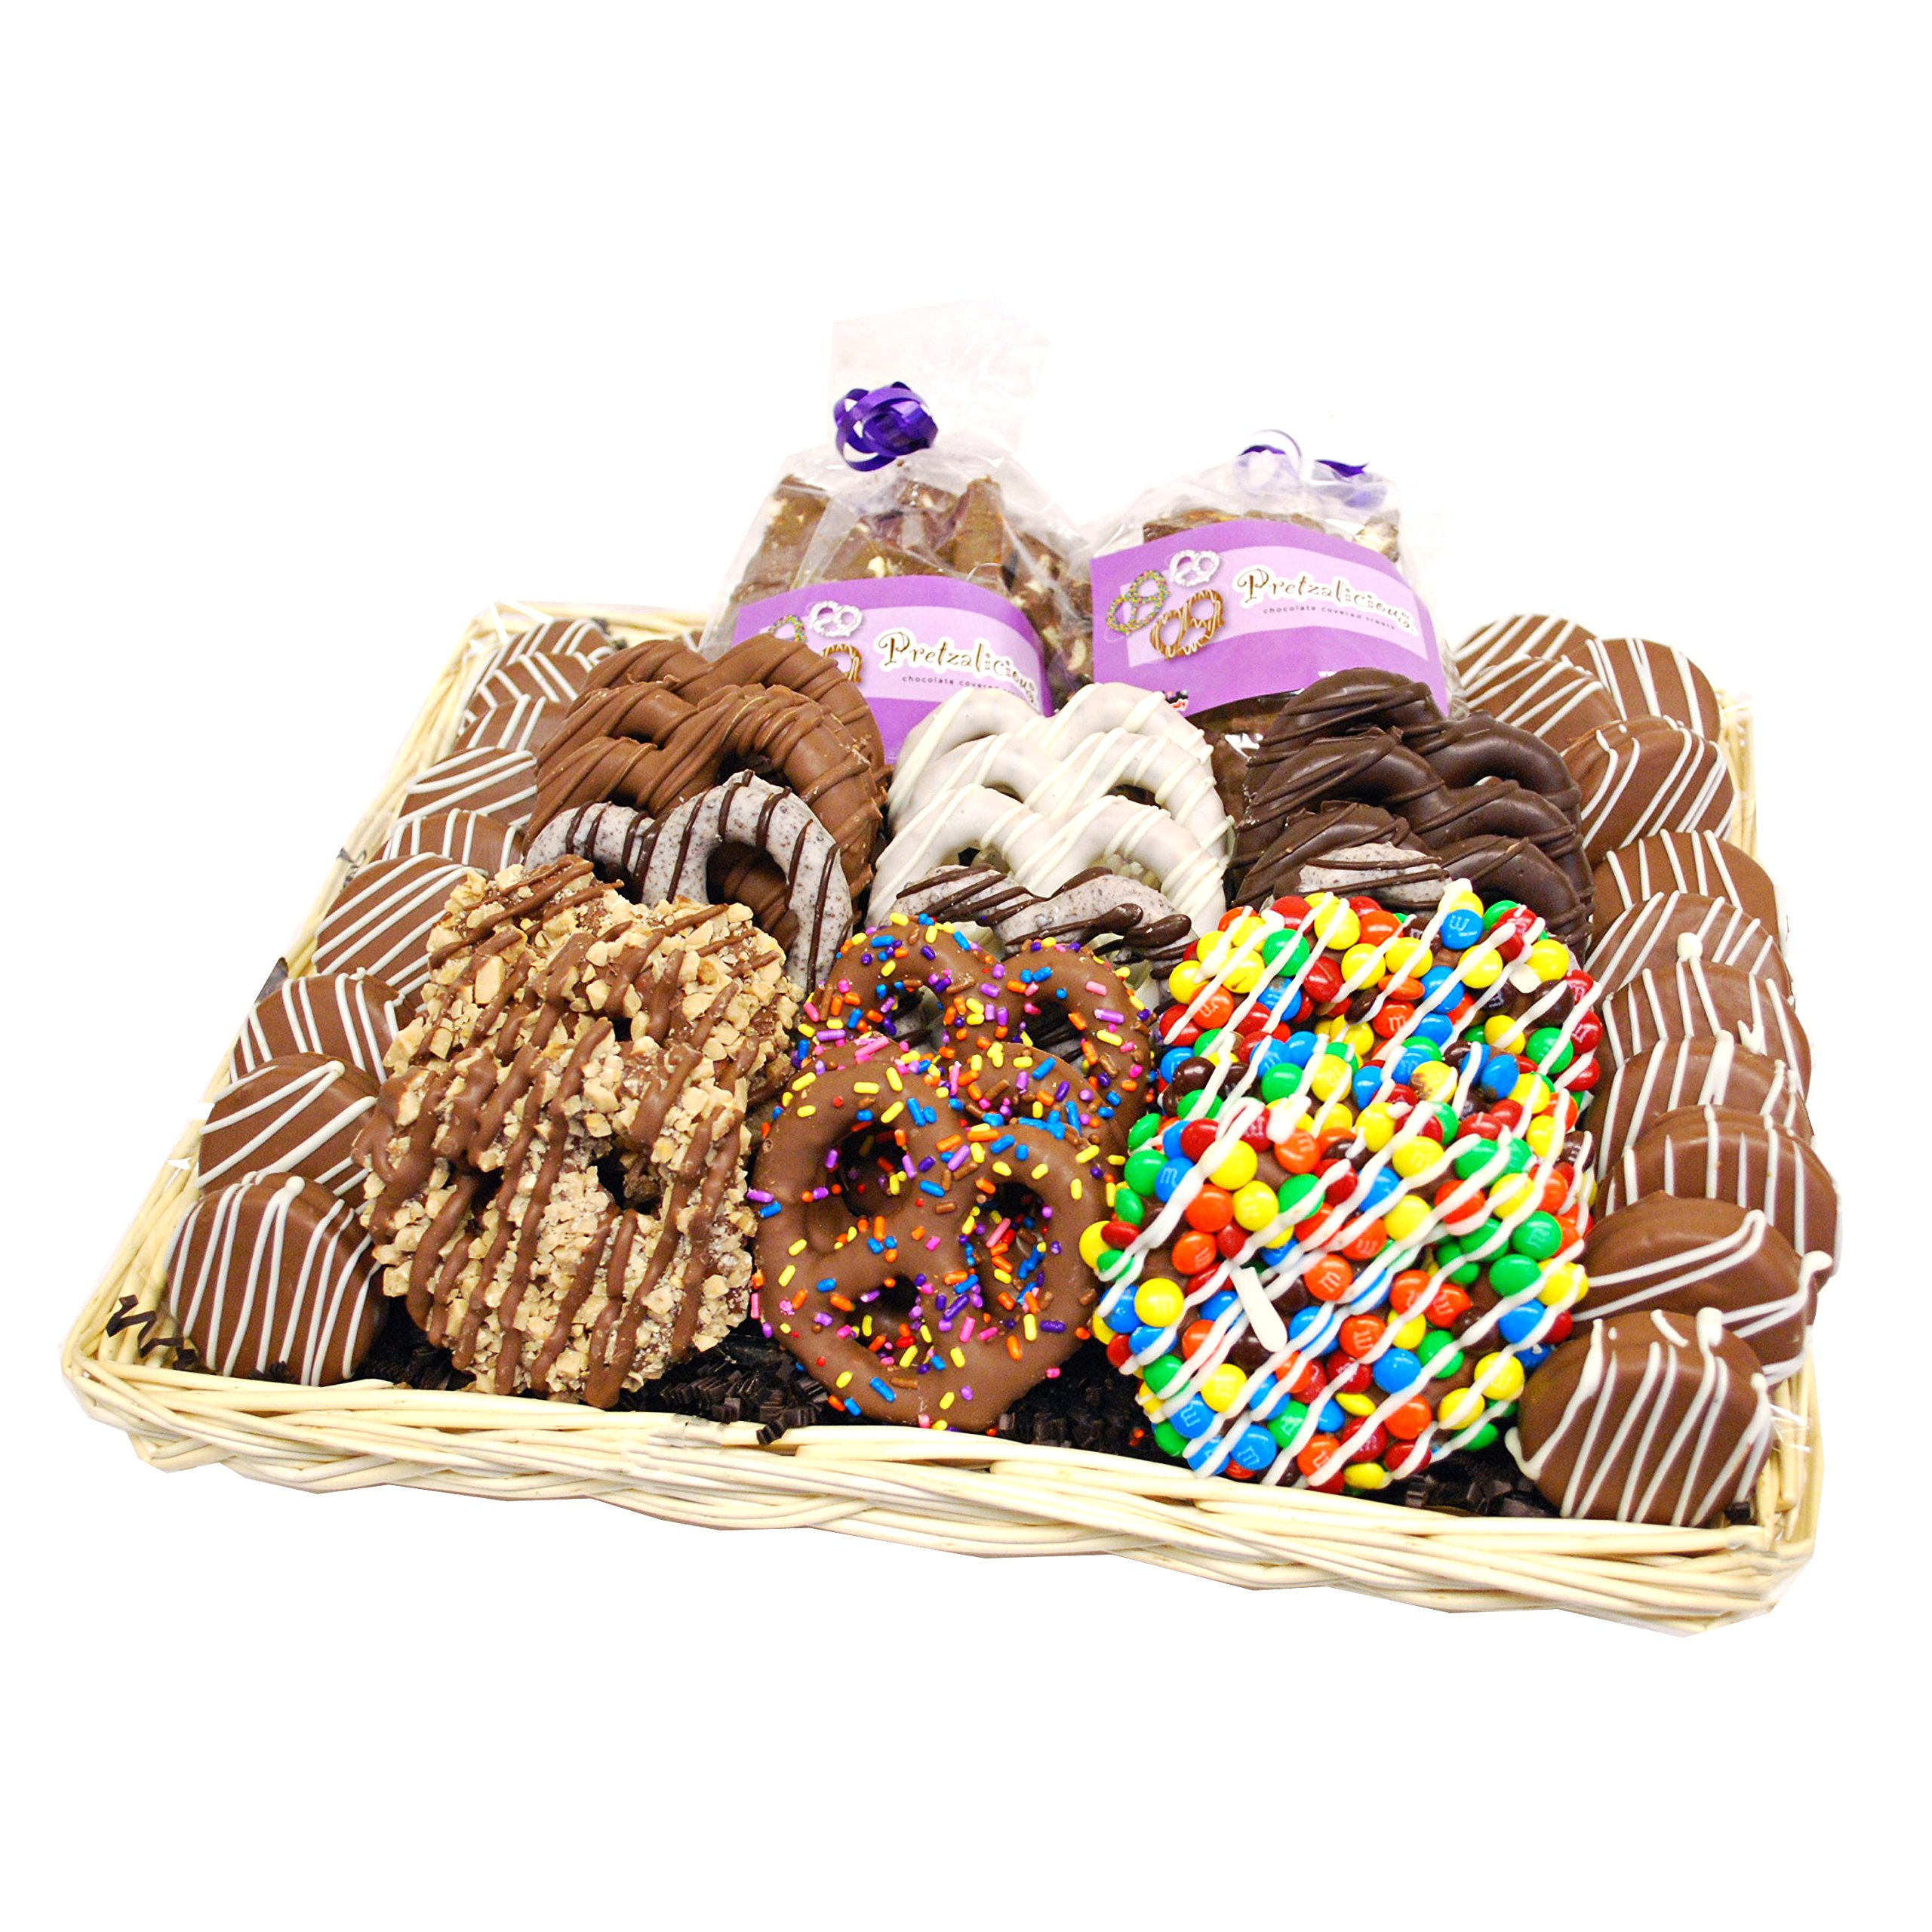 All City Candy's Cravings Collection Gourmet Hand Dipped Chocolate Covered Pretzels and Cookies Basket by All City Candy